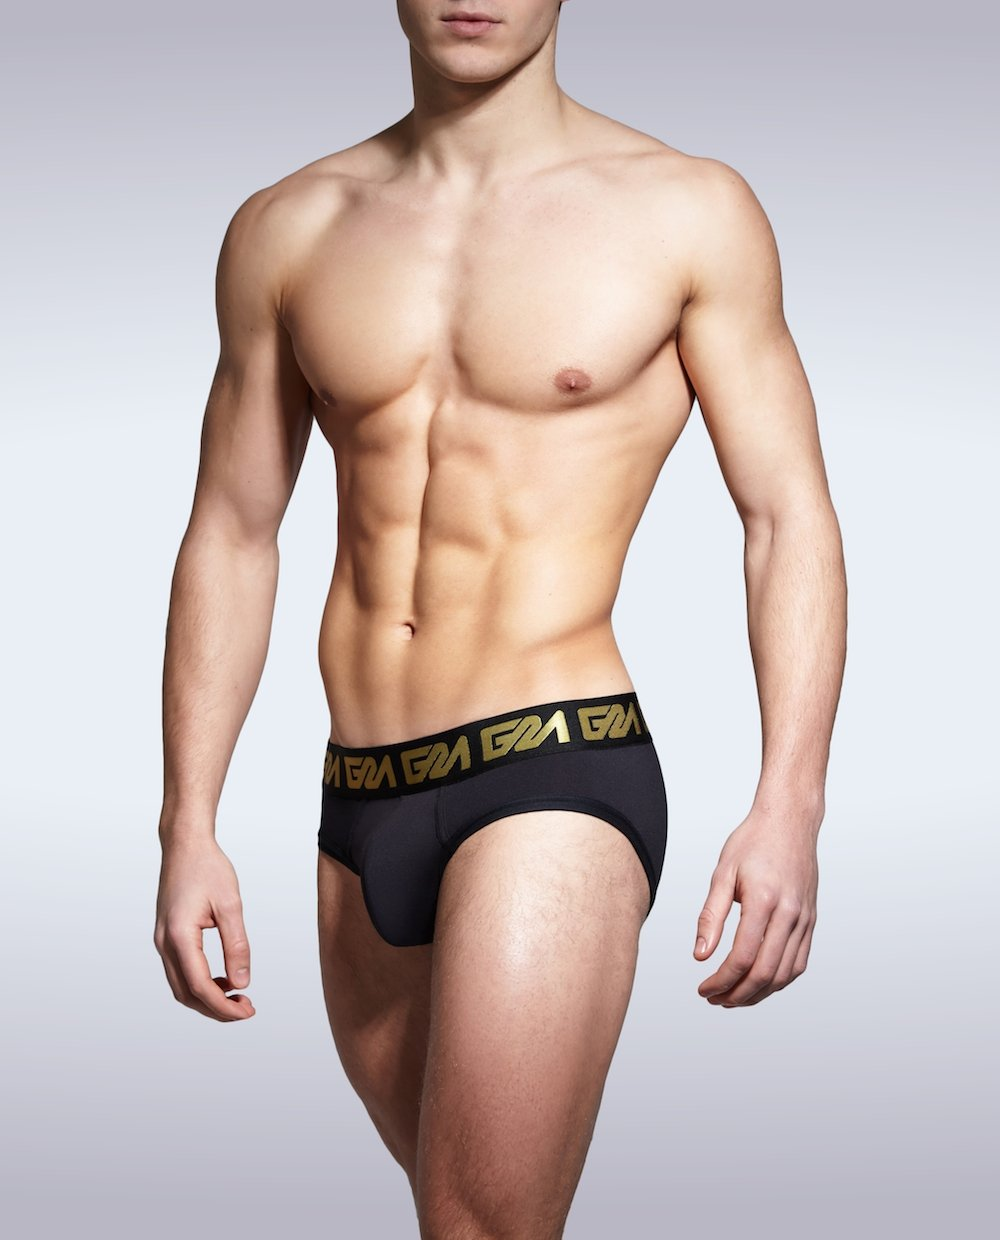 Miramar Brief - Garçon Underwear sexy men's underwear Briefs Garçon Underwear